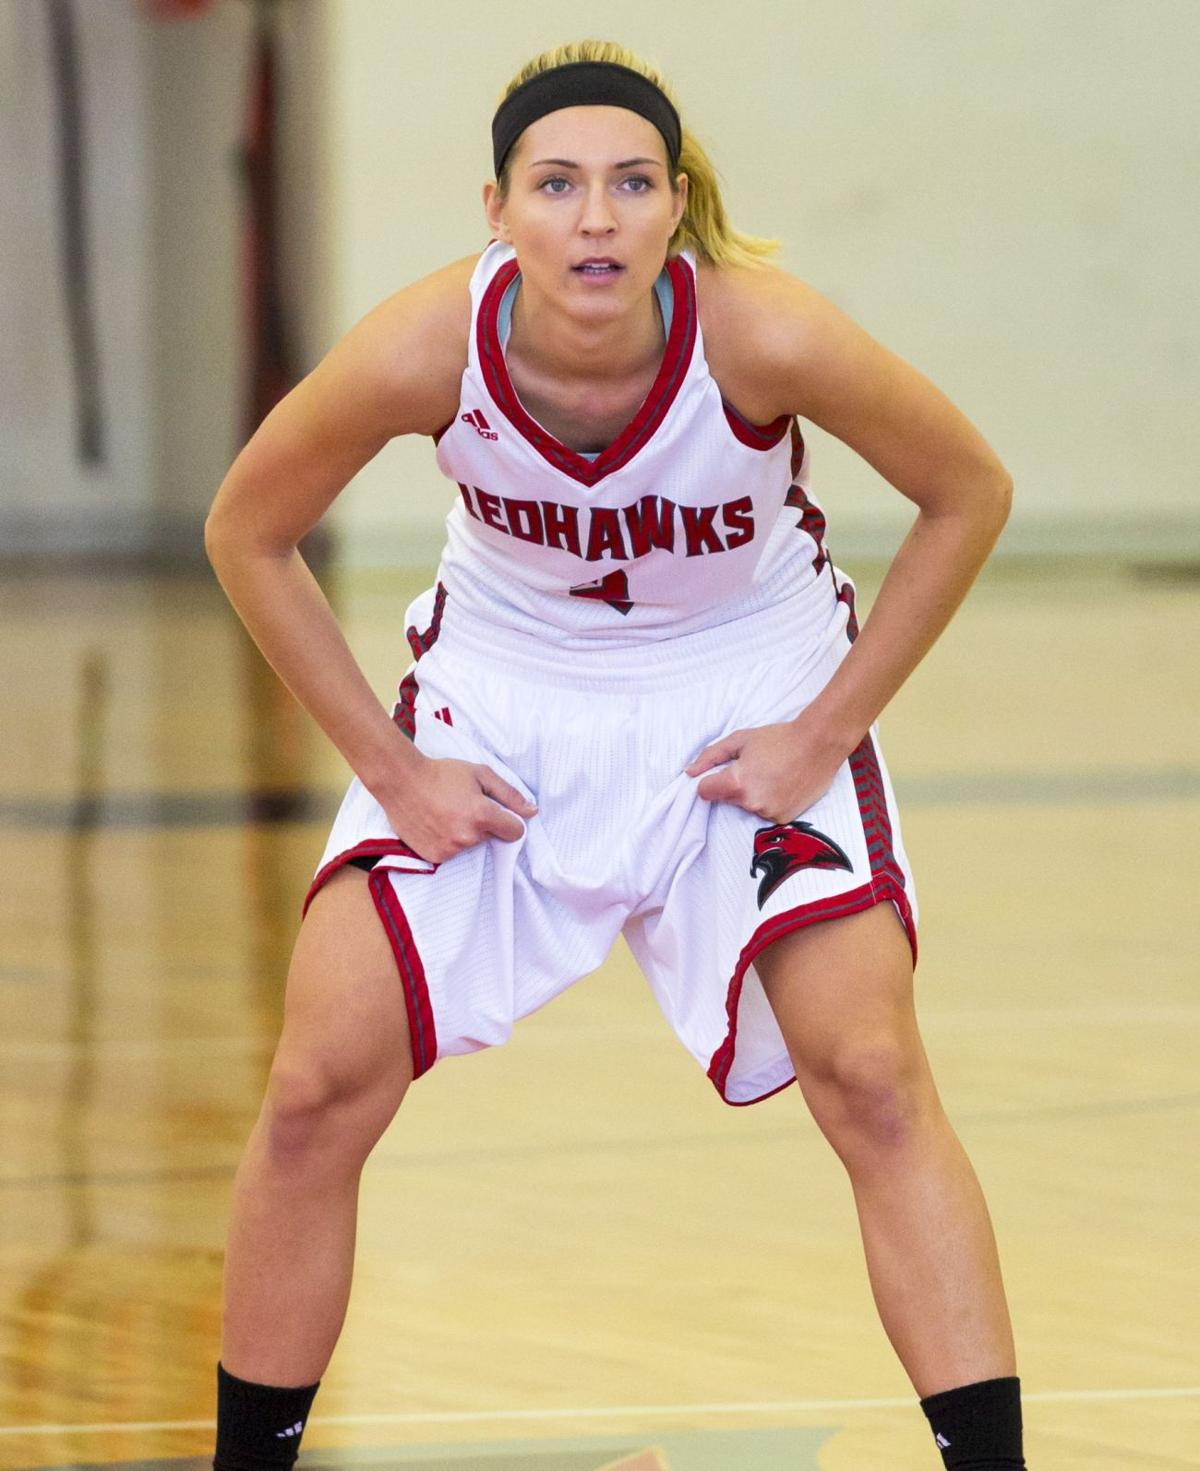 Munster grad and Indiana Northwest basketball player Bernadette Grabowski